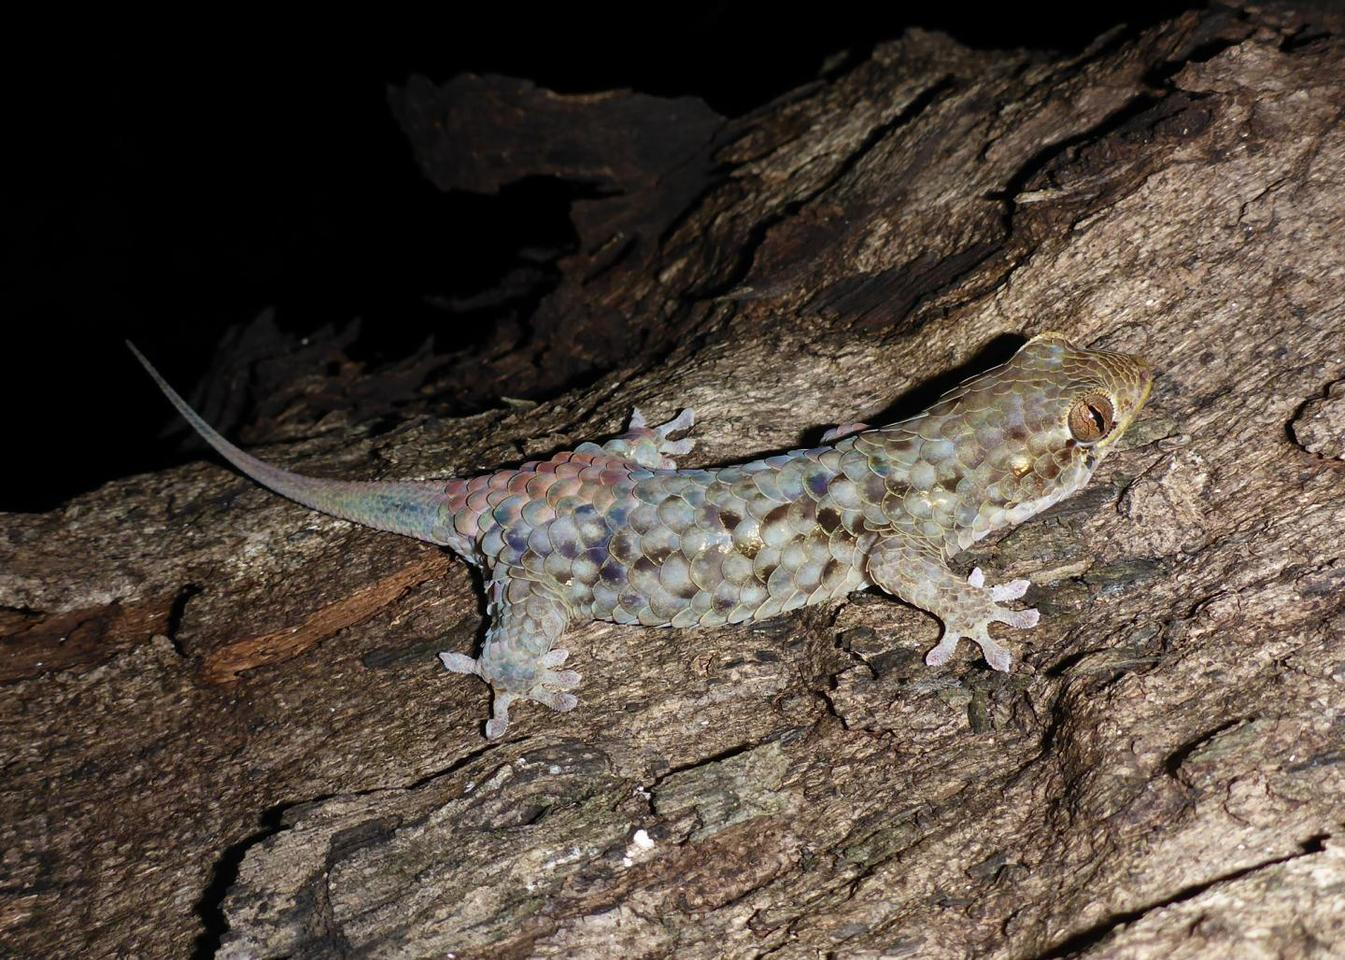 Geckolepis megalepis, with its scales intact